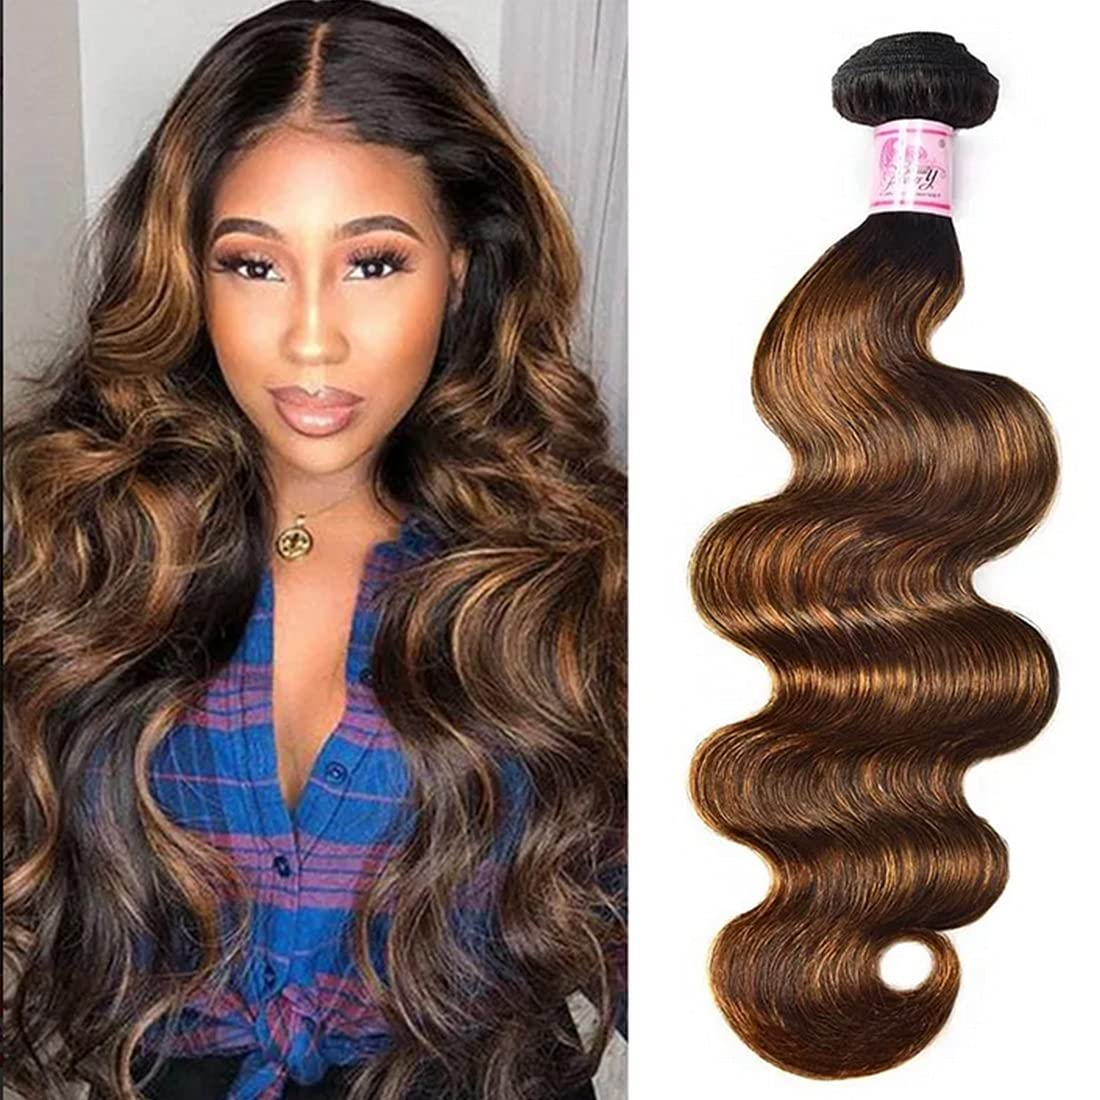 Beauty Forever #FB30 Color Brazilian 24Inc Wave Body Hair Weave Phoenix Max 82% OFF Mall